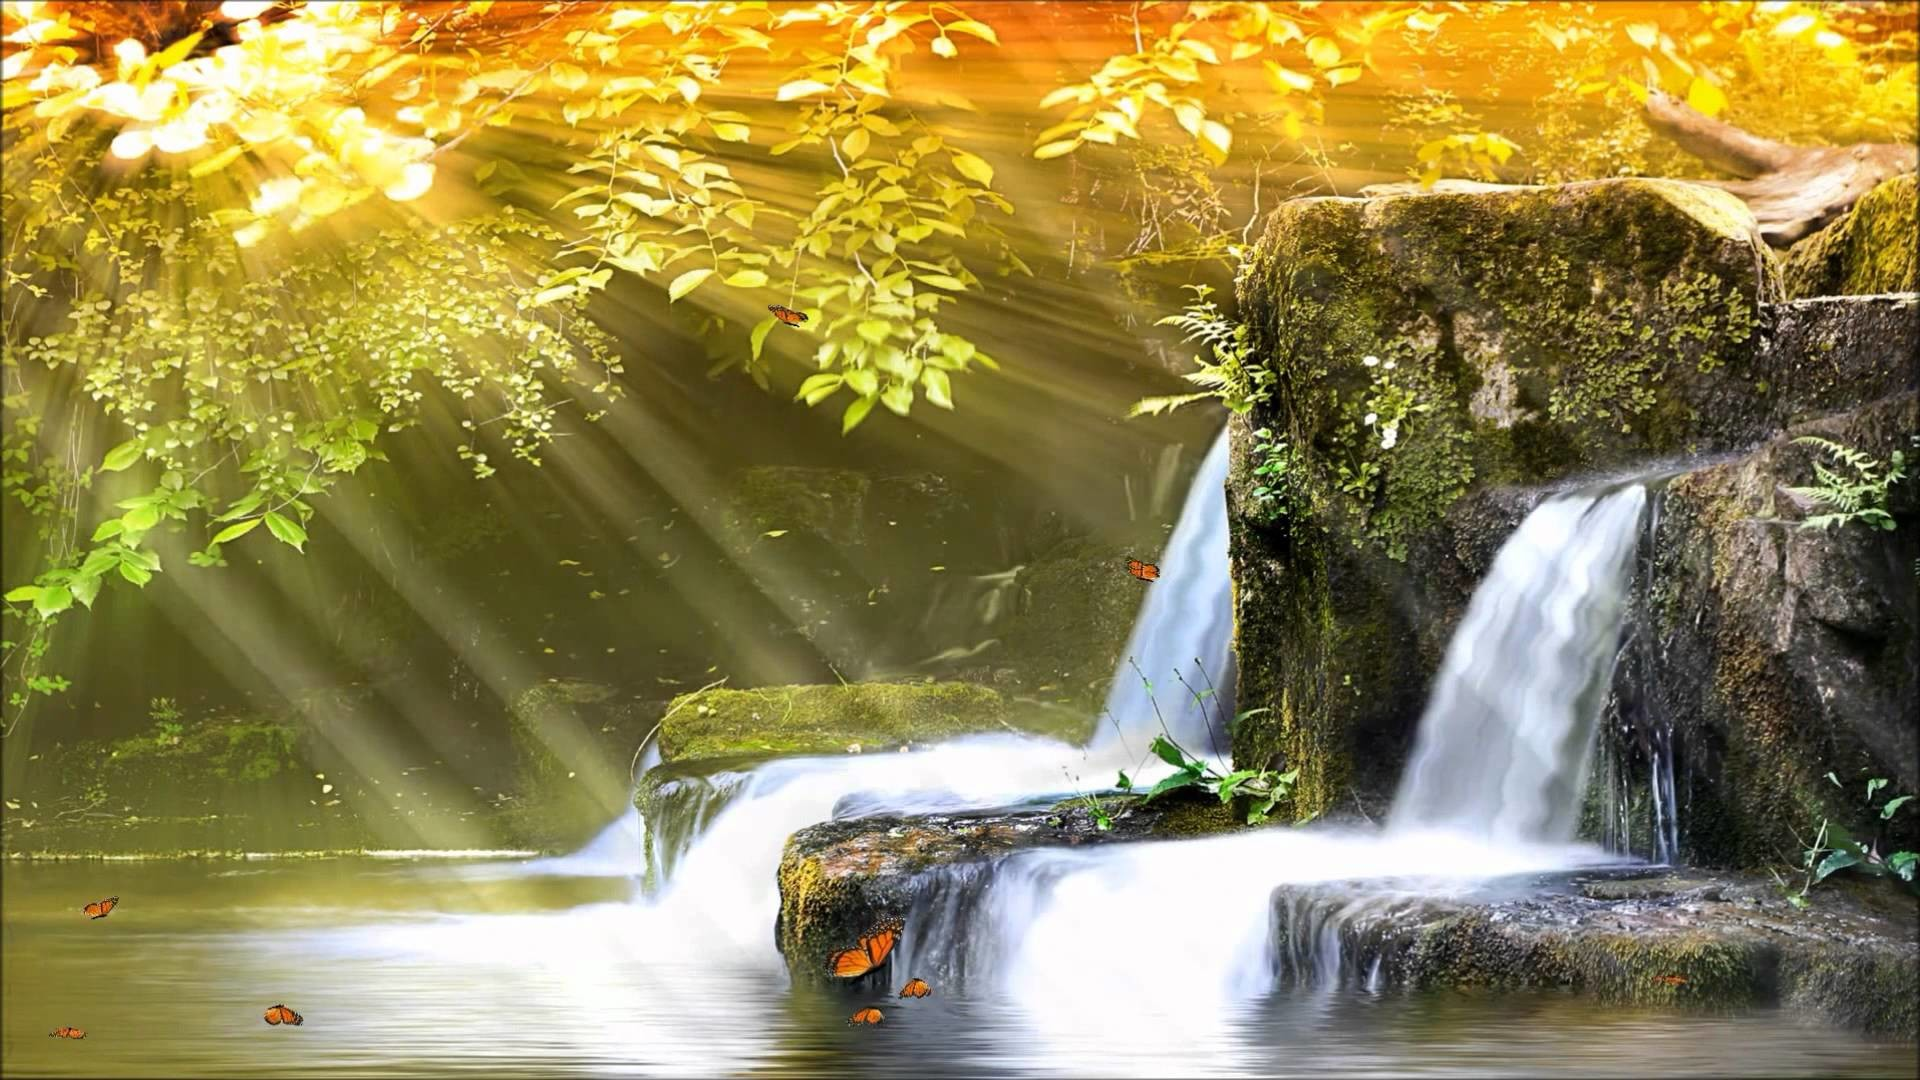 3d Live Waterfall Wallpapers Animated Waterfall Wallpaper With Sound 46 Images